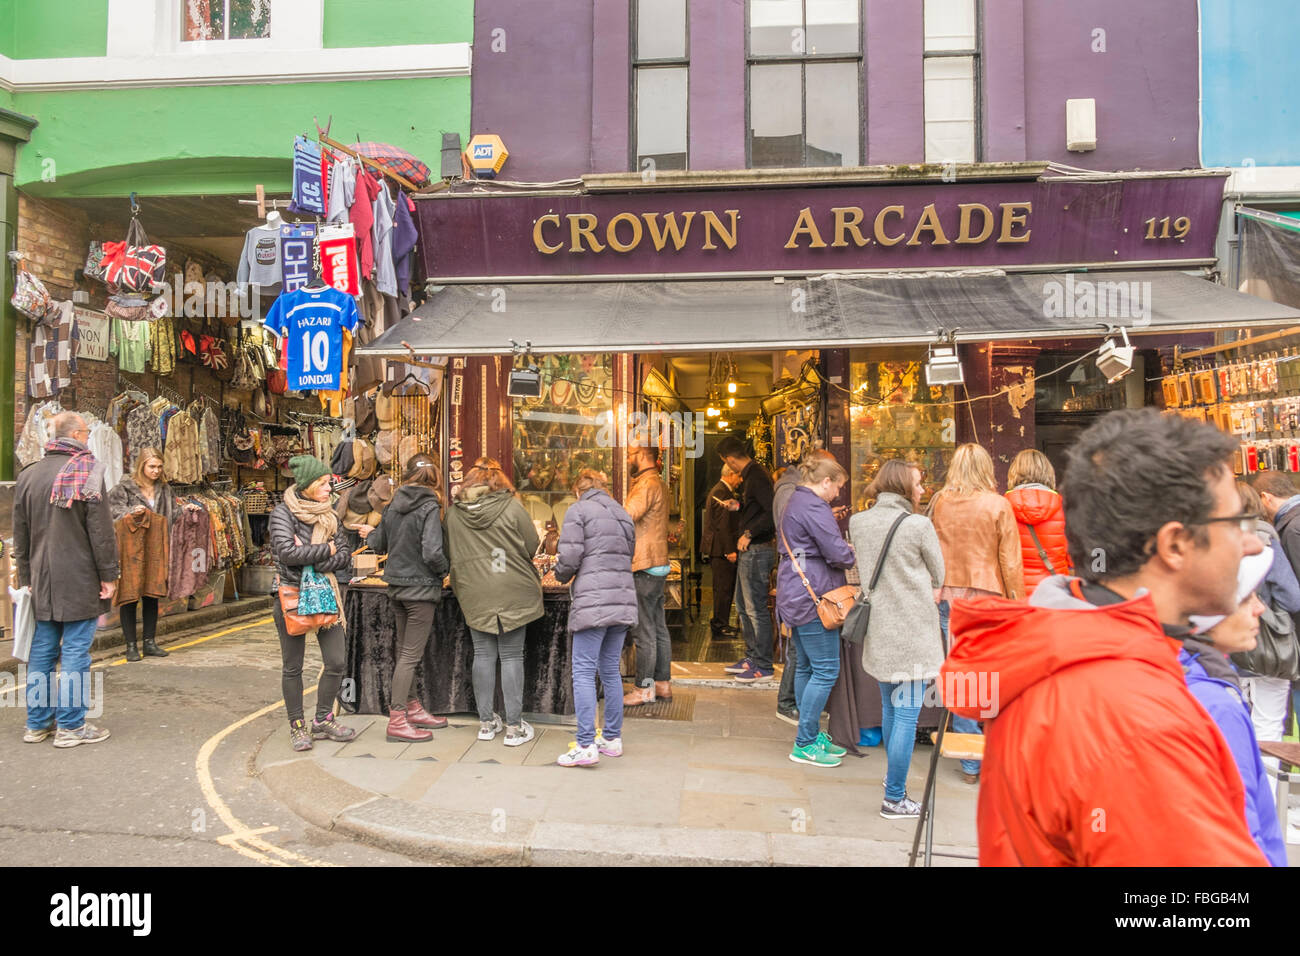 visitors of portobello road market in front of crown arcade store, notting hill, london, england - Stock Image